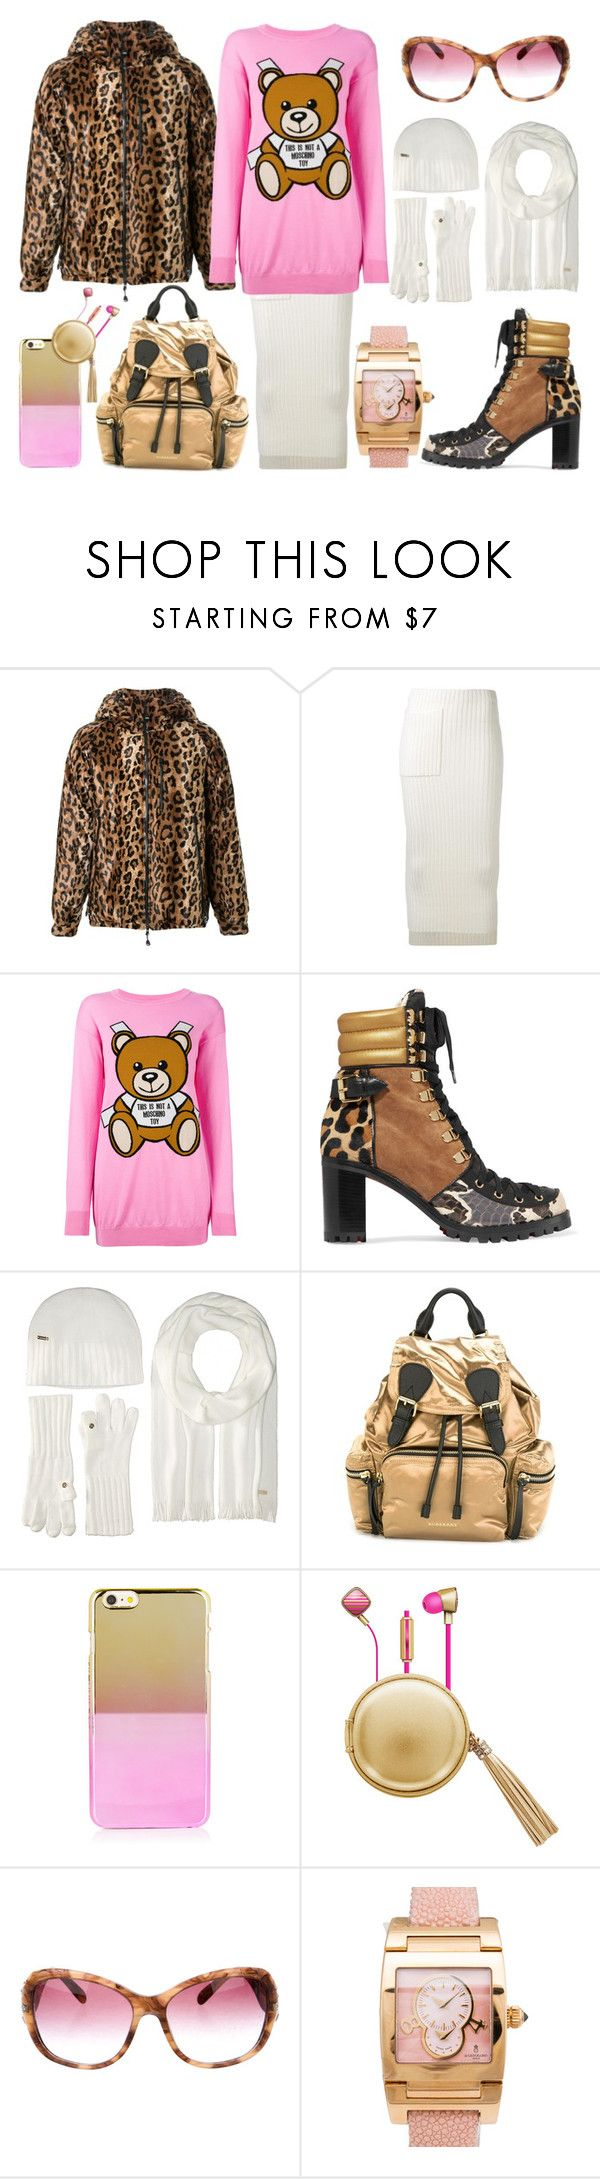 """""""Teddy The Animal"""" by sanya-styleup ❤ liked on Polyvore featuring DressCamp, Joseph, Moschino, Christian Louboutin, Burberry, The Macbeth Collection, Bulgari and de Grisogono"""